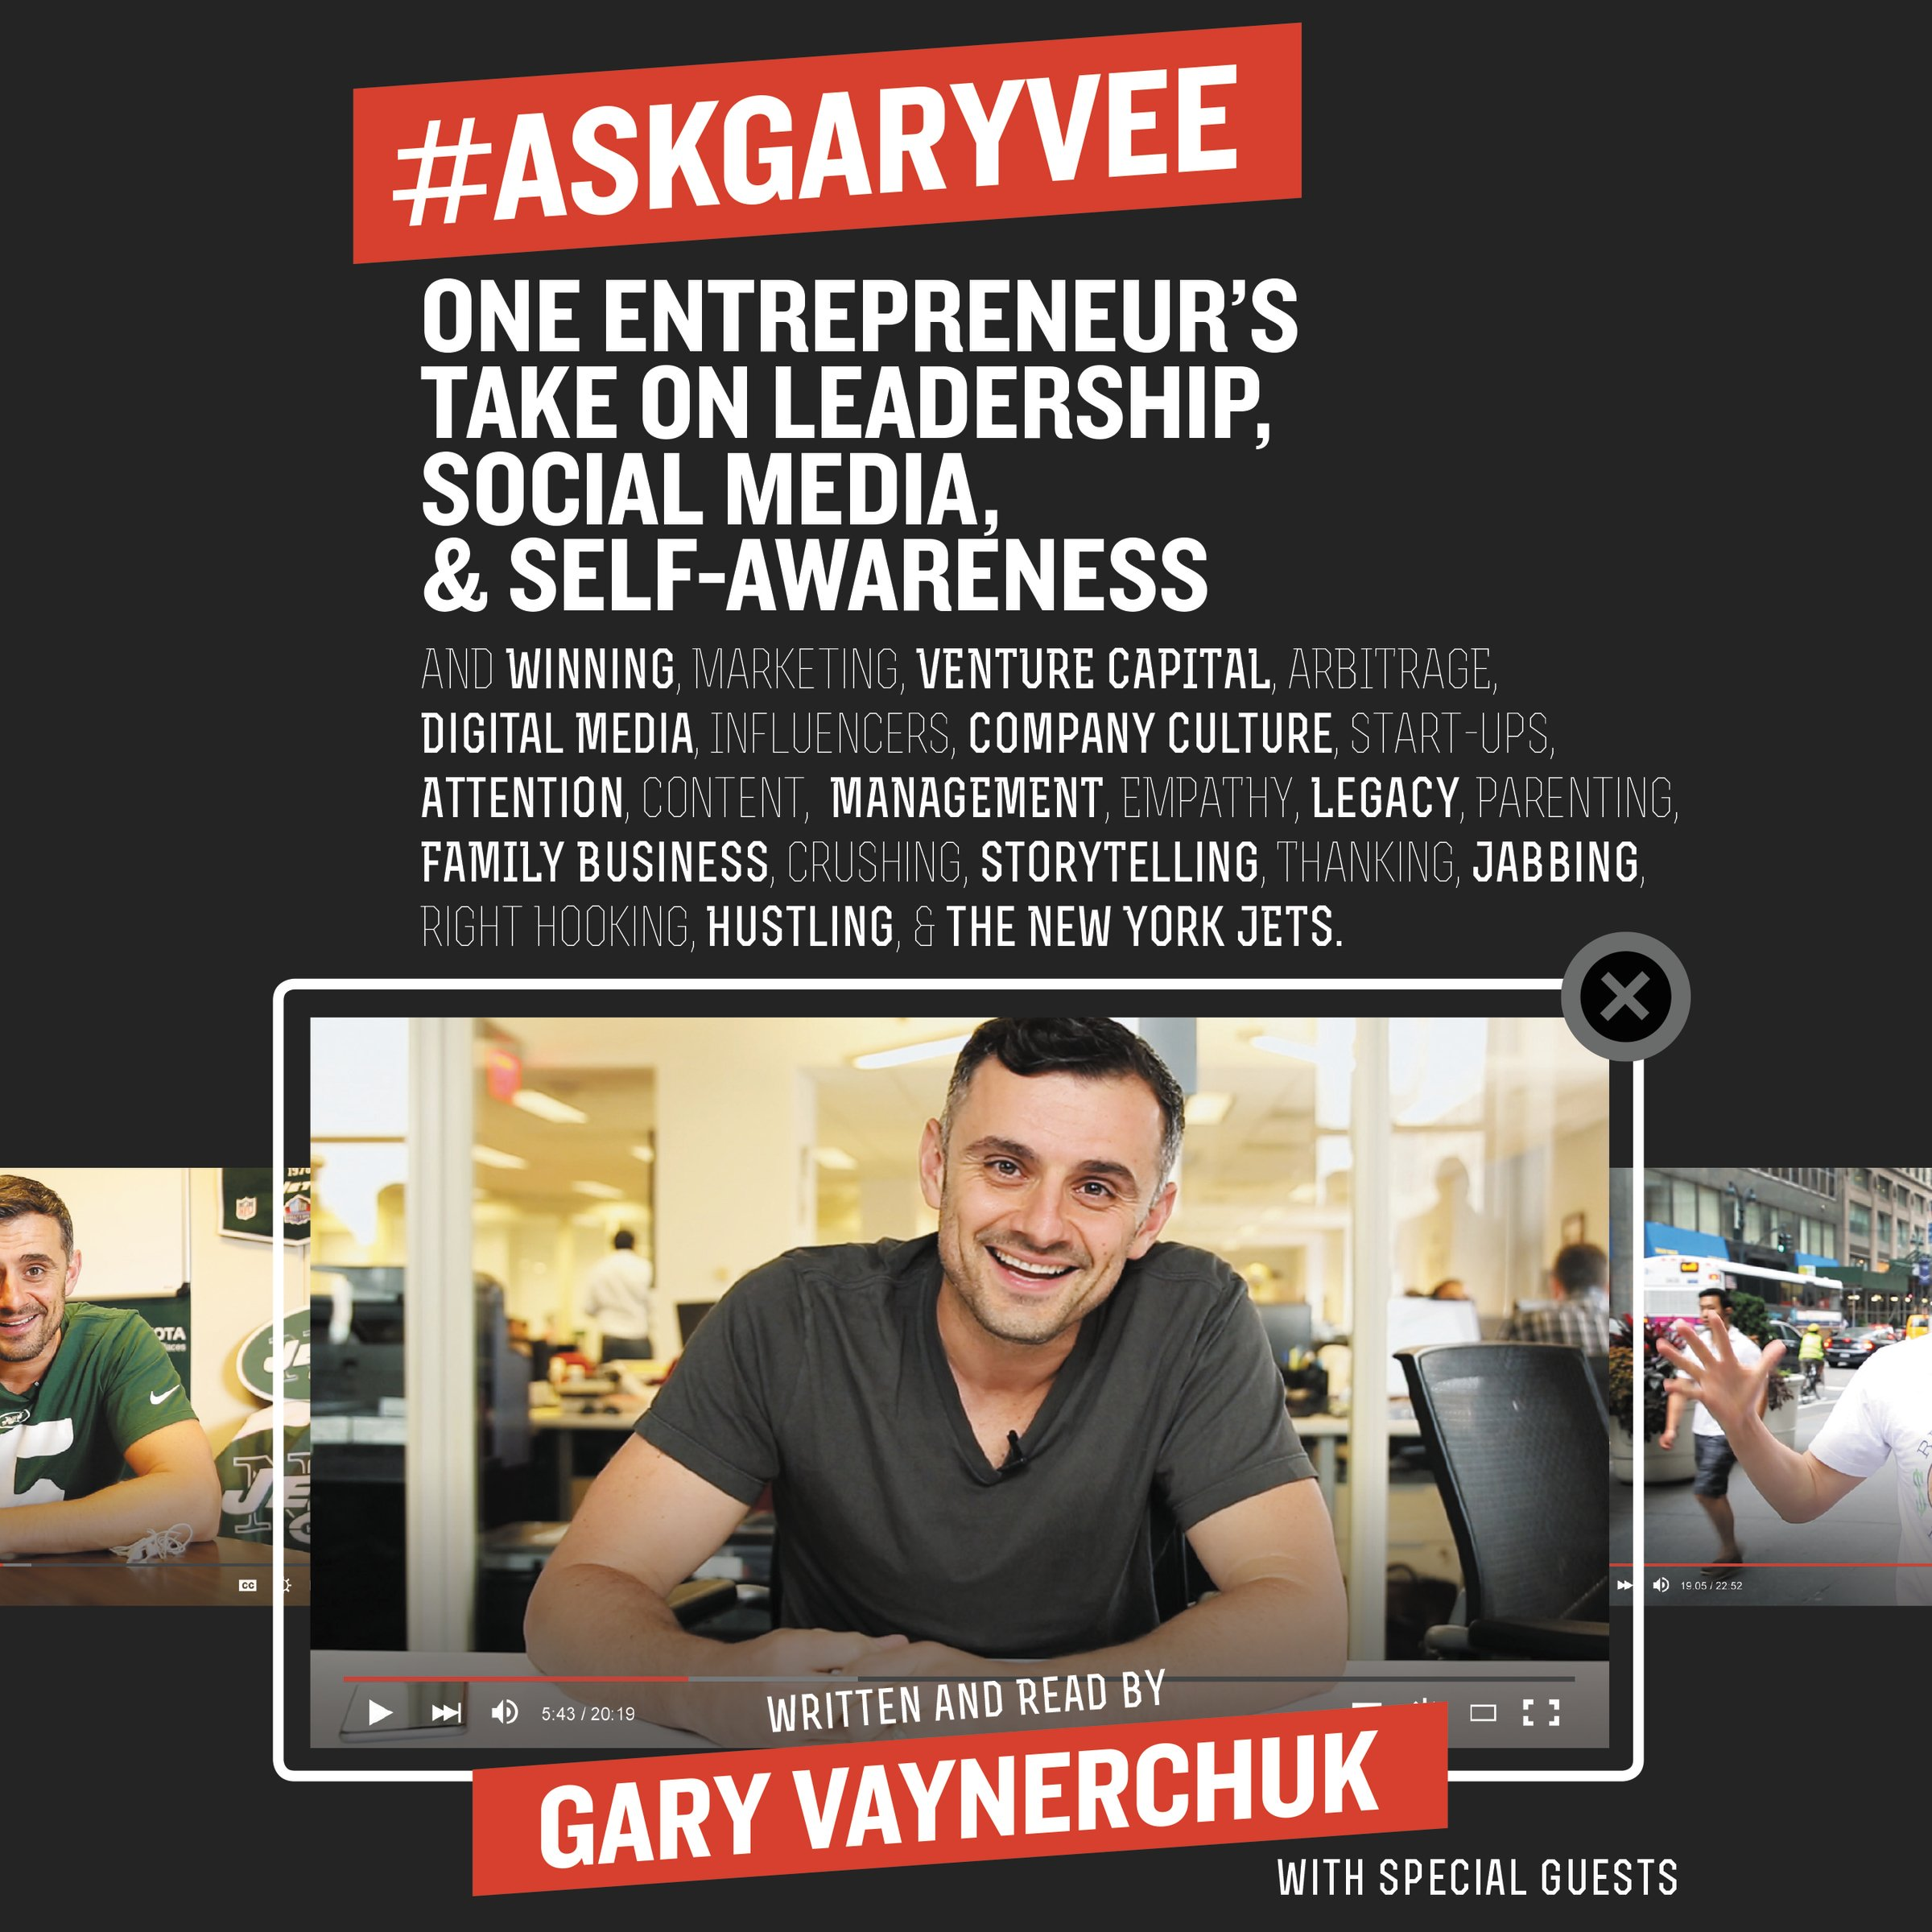 #AskGaryVee: 437 Questions & Answers on . . .